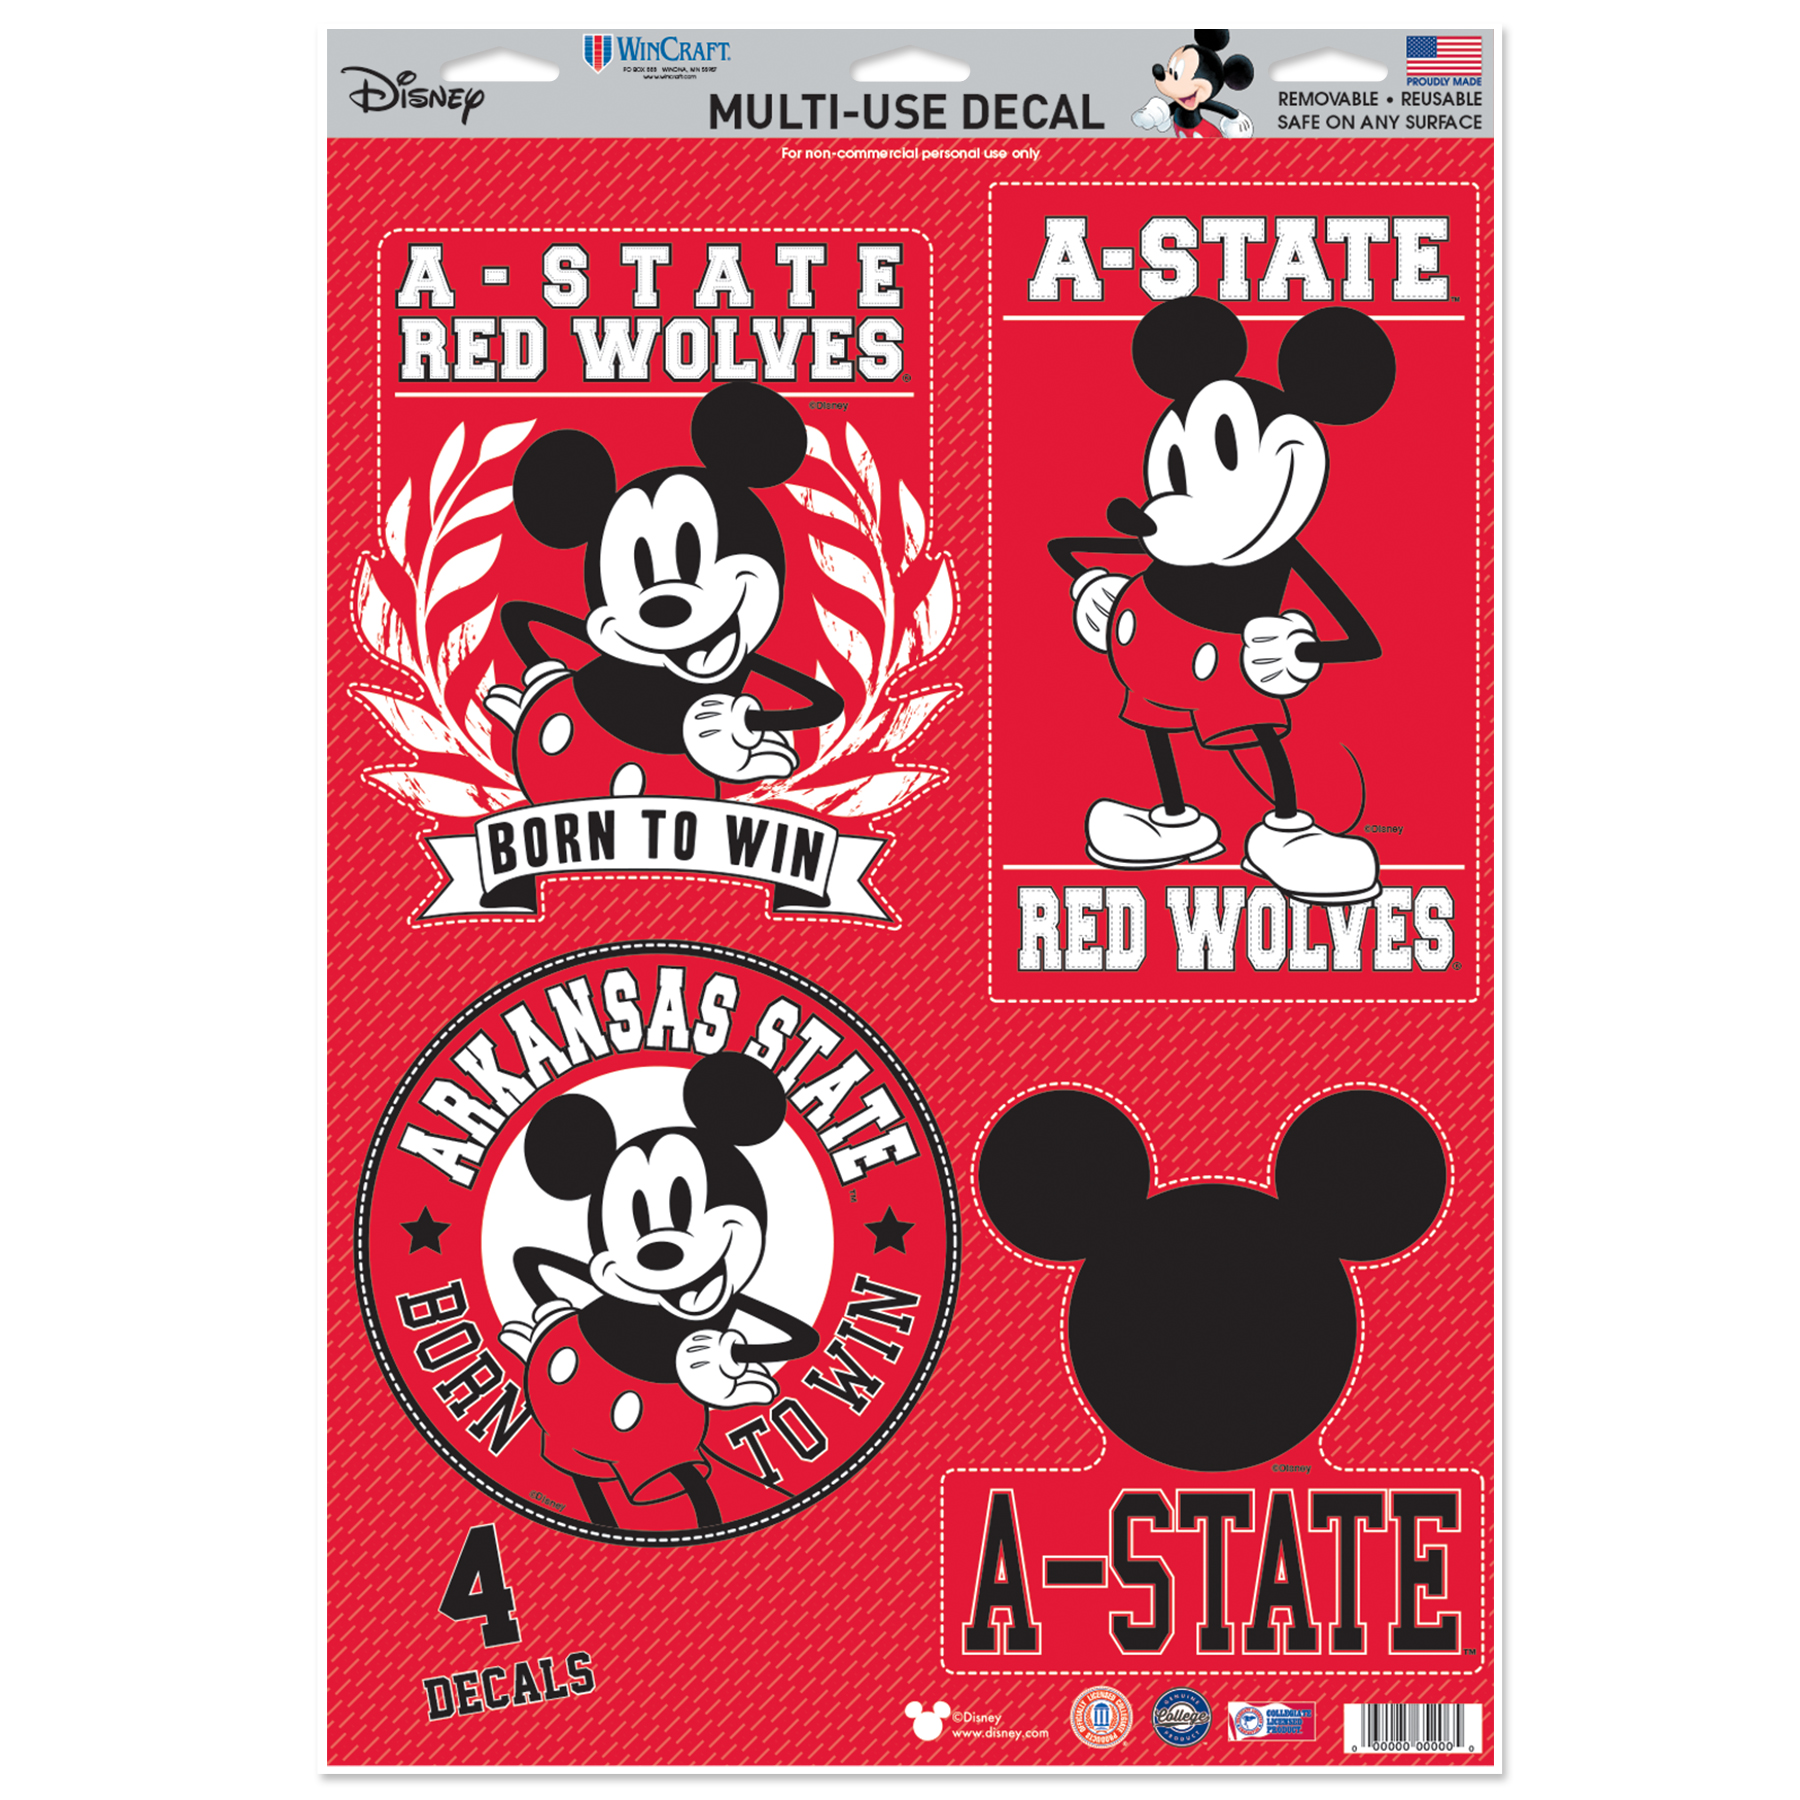 A-State & Disney Decals - 4 Pack